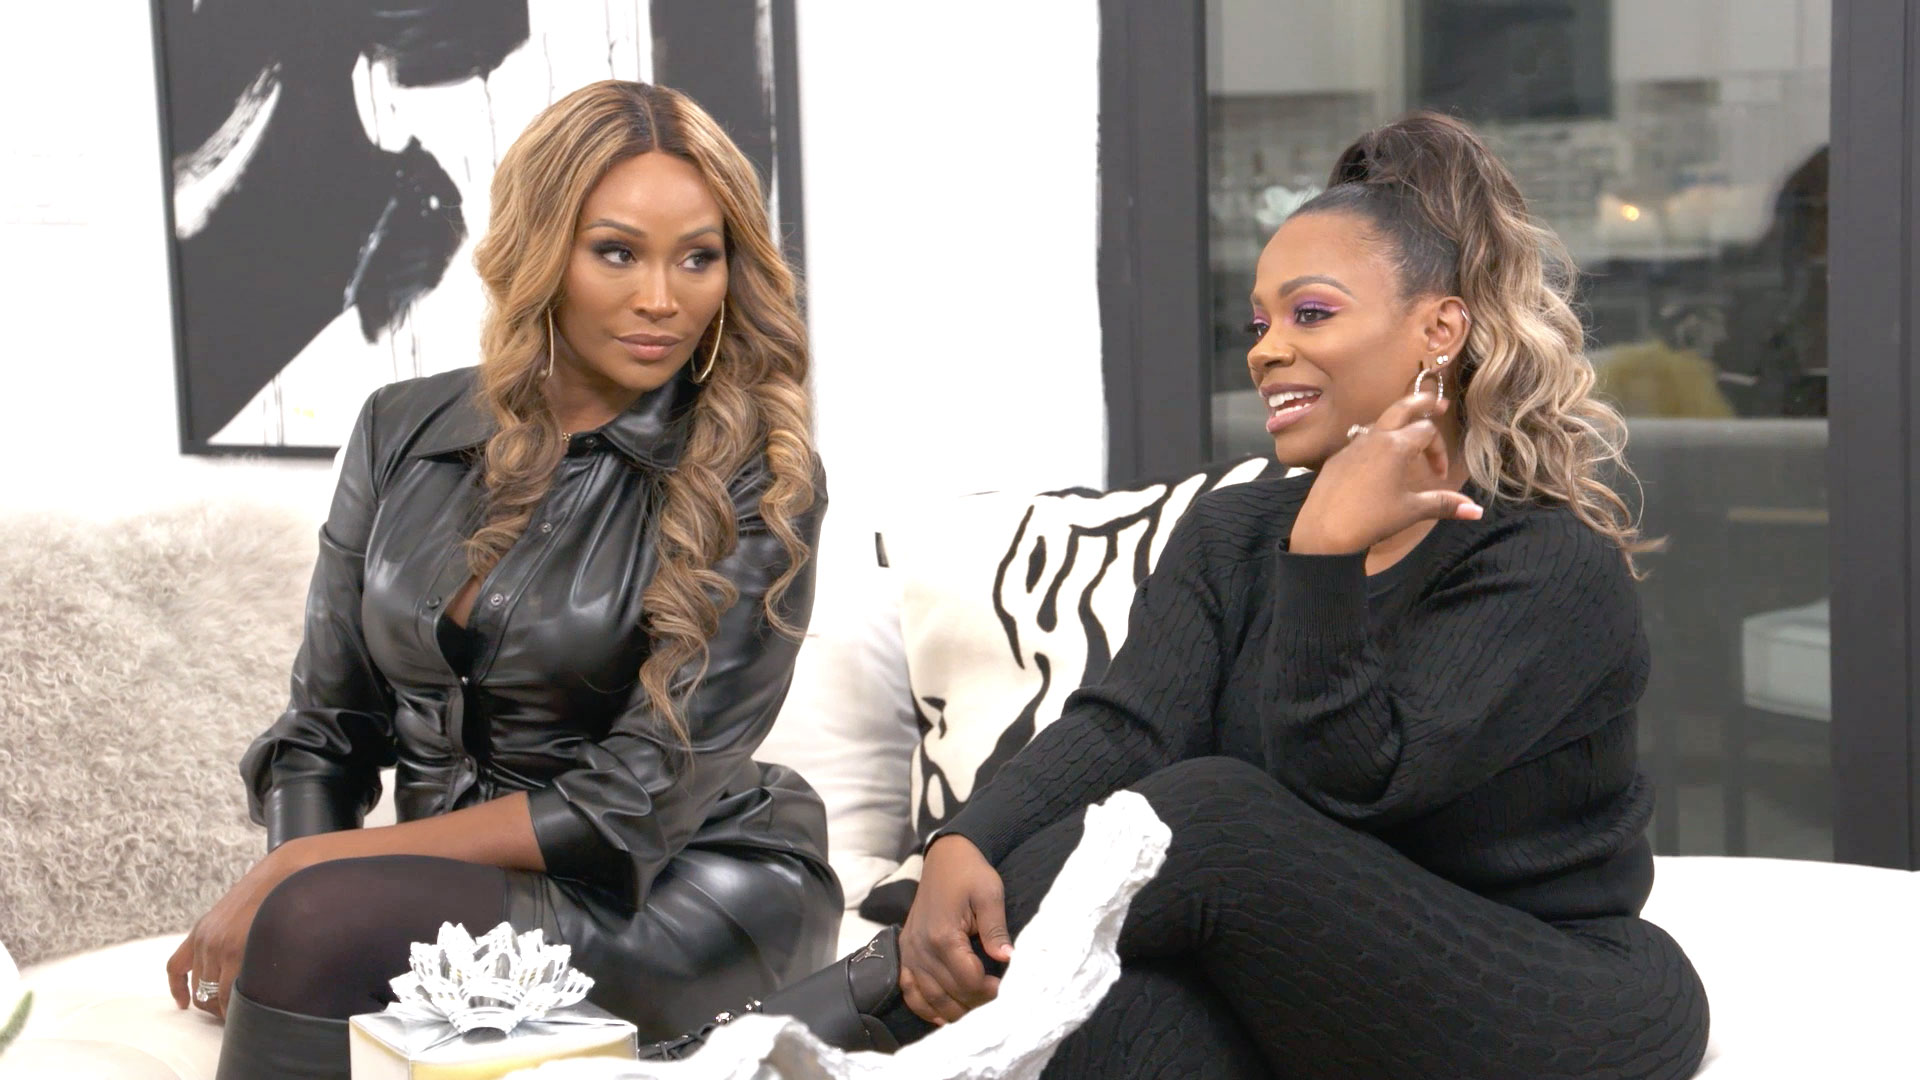 Kandi Burruss Says Drew Sidora Is Overreacting by Canceling Her Baby's Christening Because of LaToya Ali